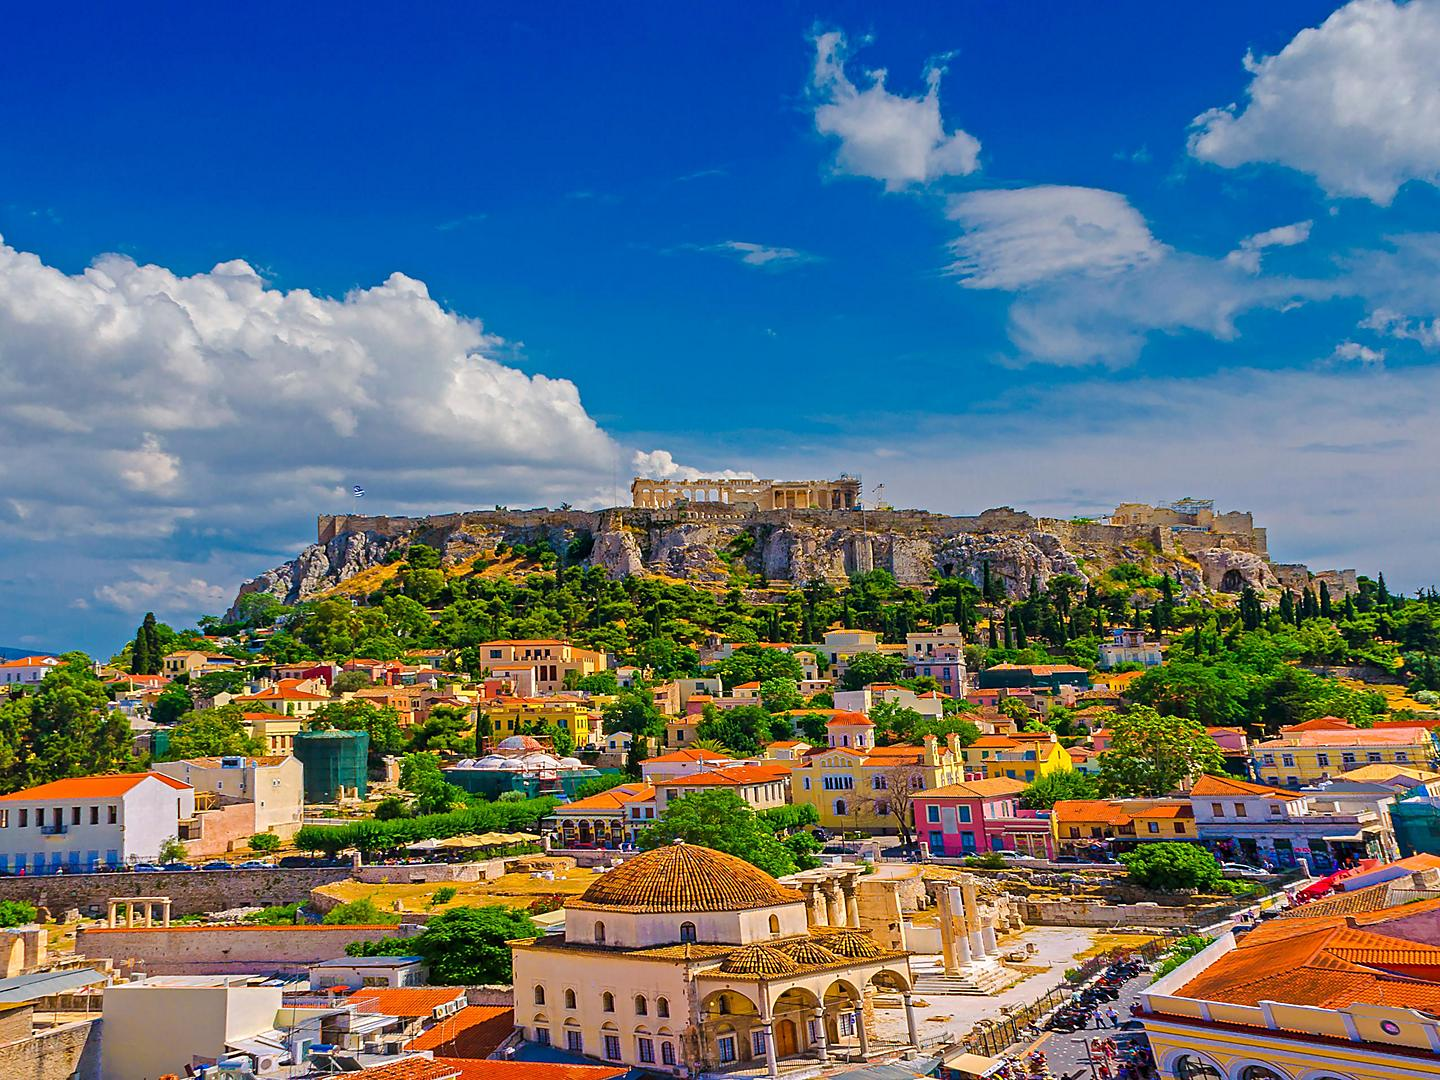 Athens (Piraeus), Greece, View of city and Acropolis